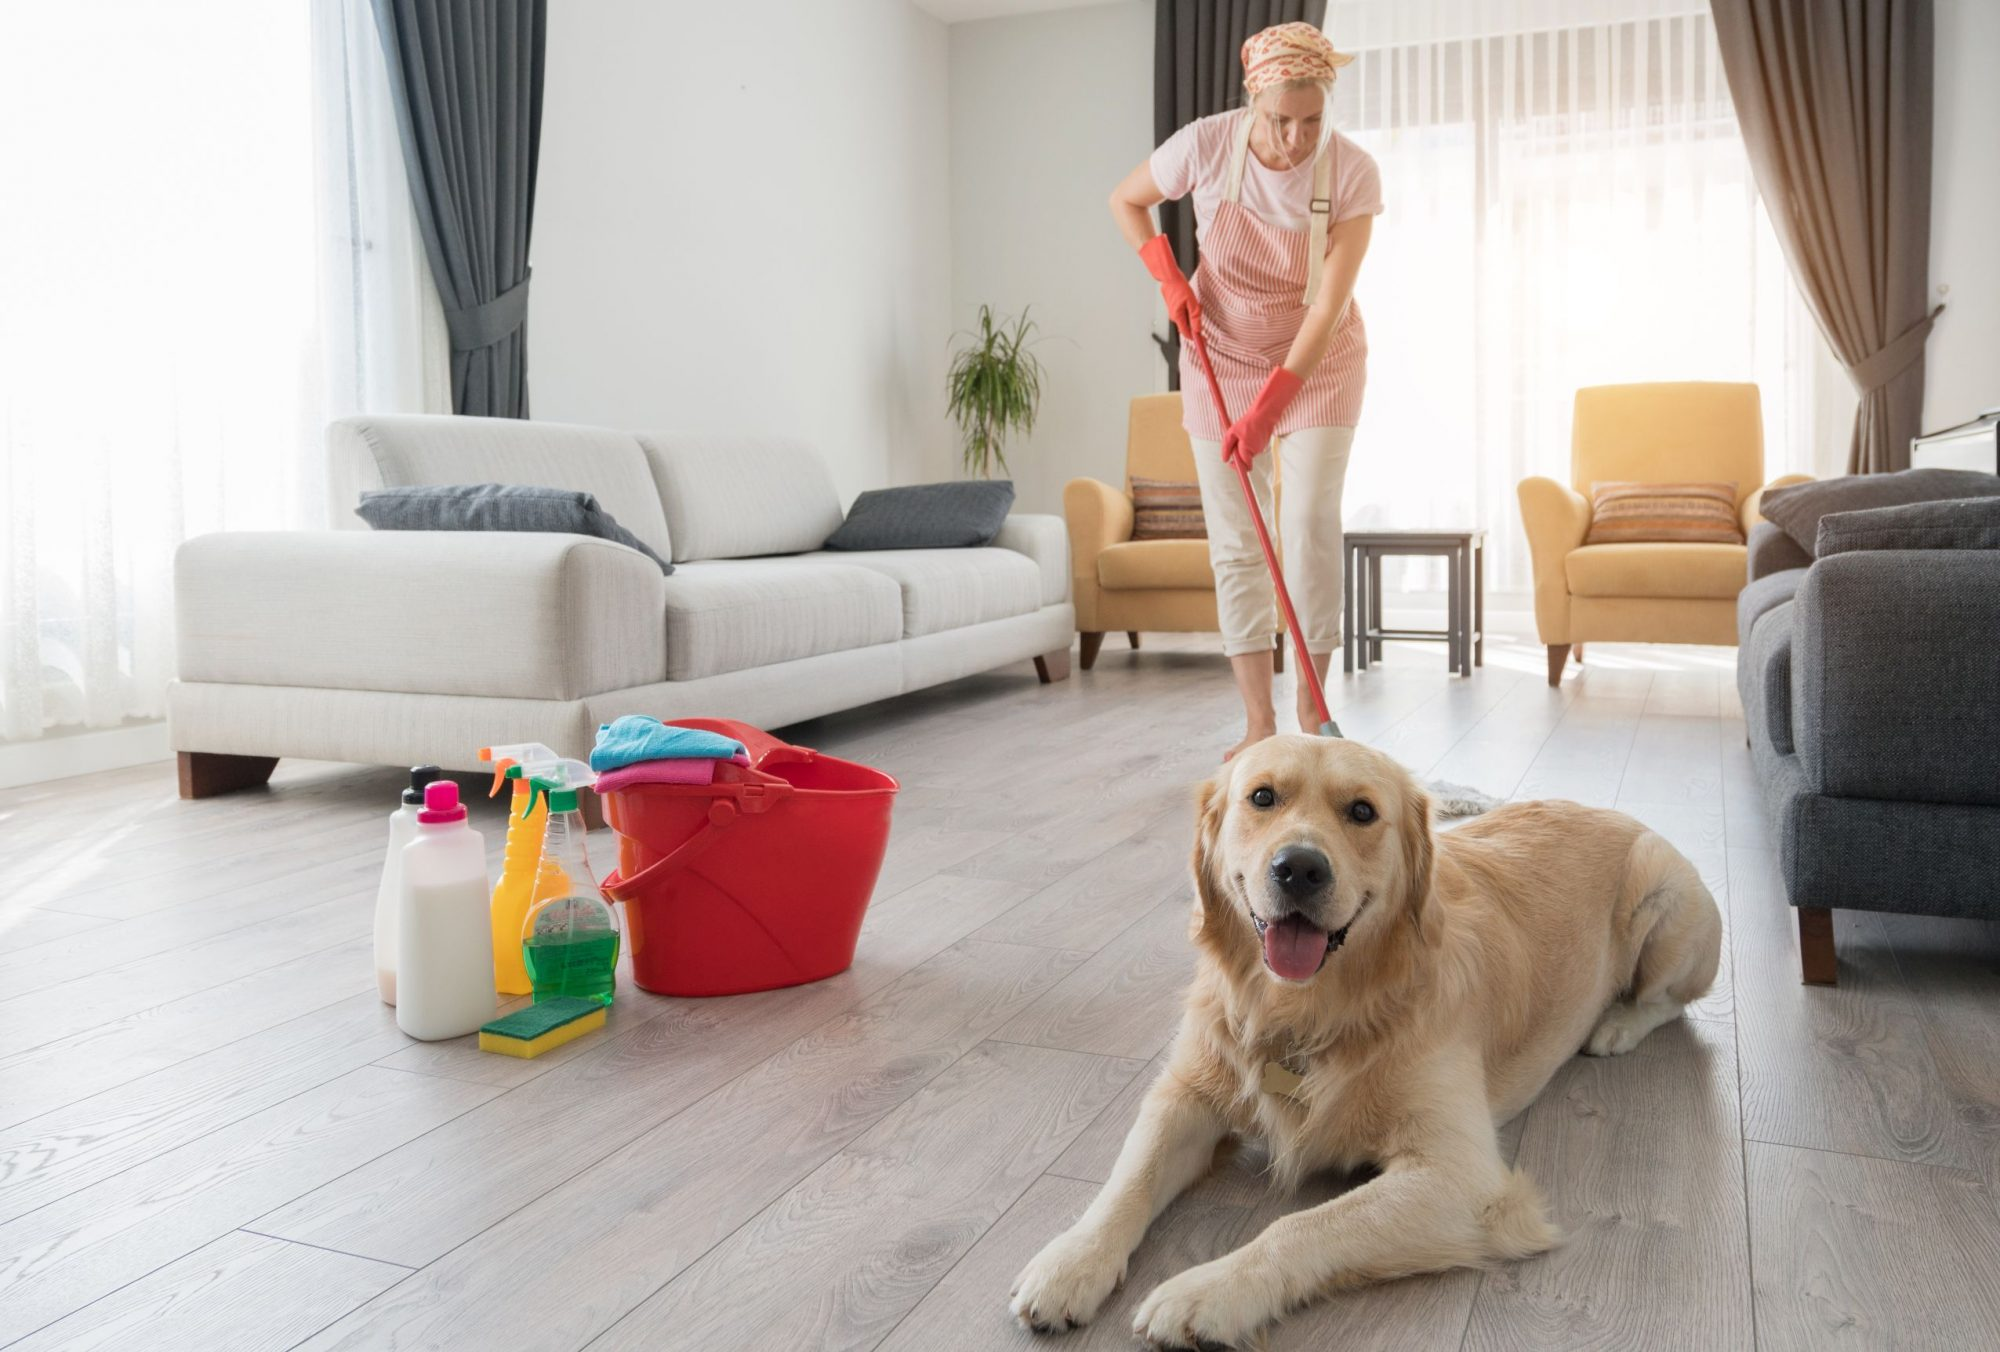 A dog smiles as a woman cleans the floor behind him.